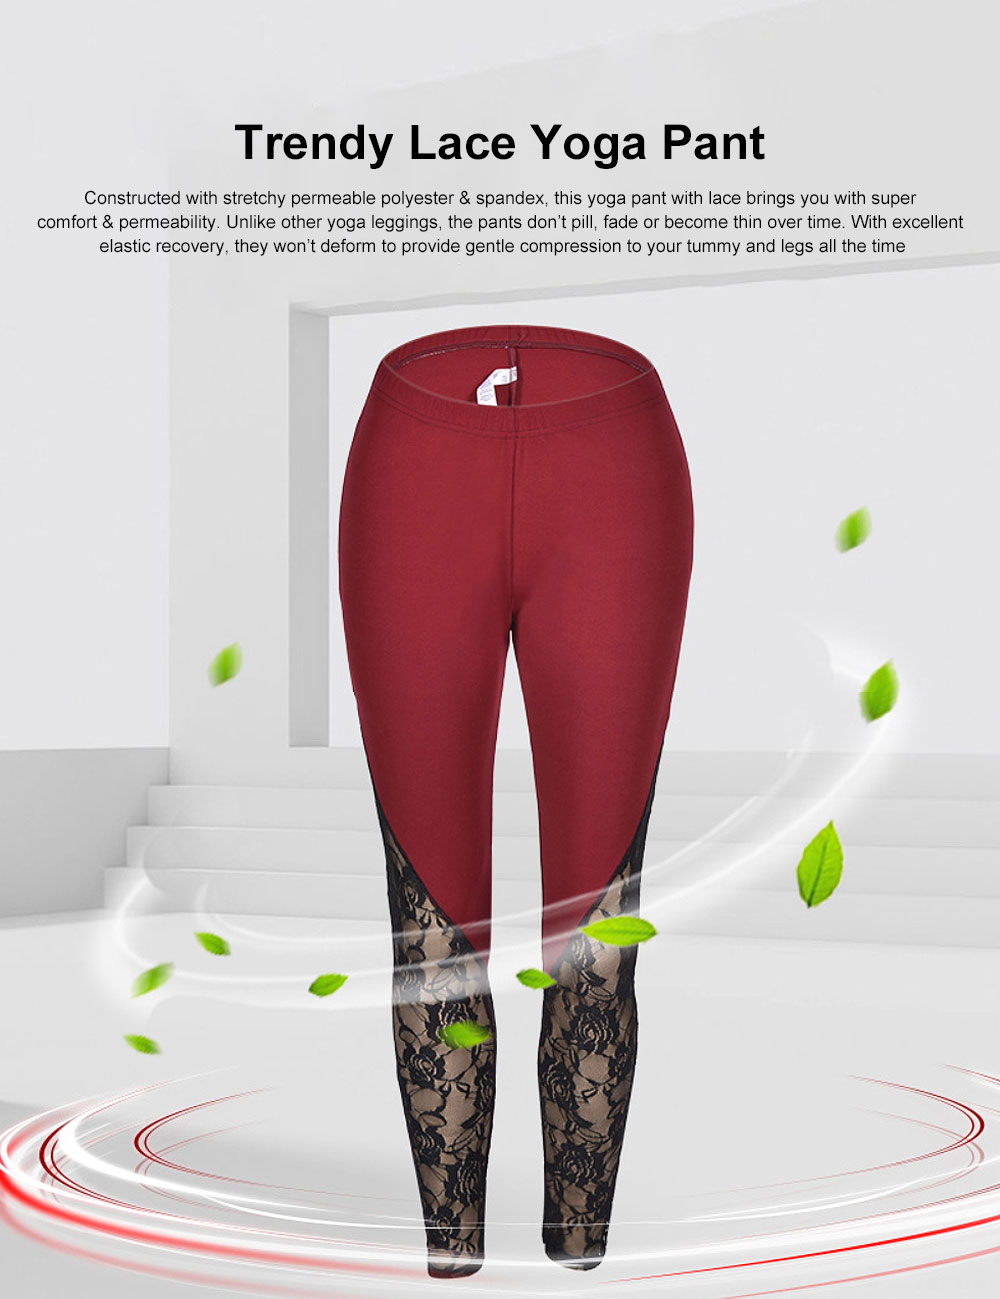 Trendy Lace Yoga Pant Fast-Dry Soft Polyester Trousers Elastic Waistband Breathable Sport Wear Pants for Women Lady 4 Colors 0